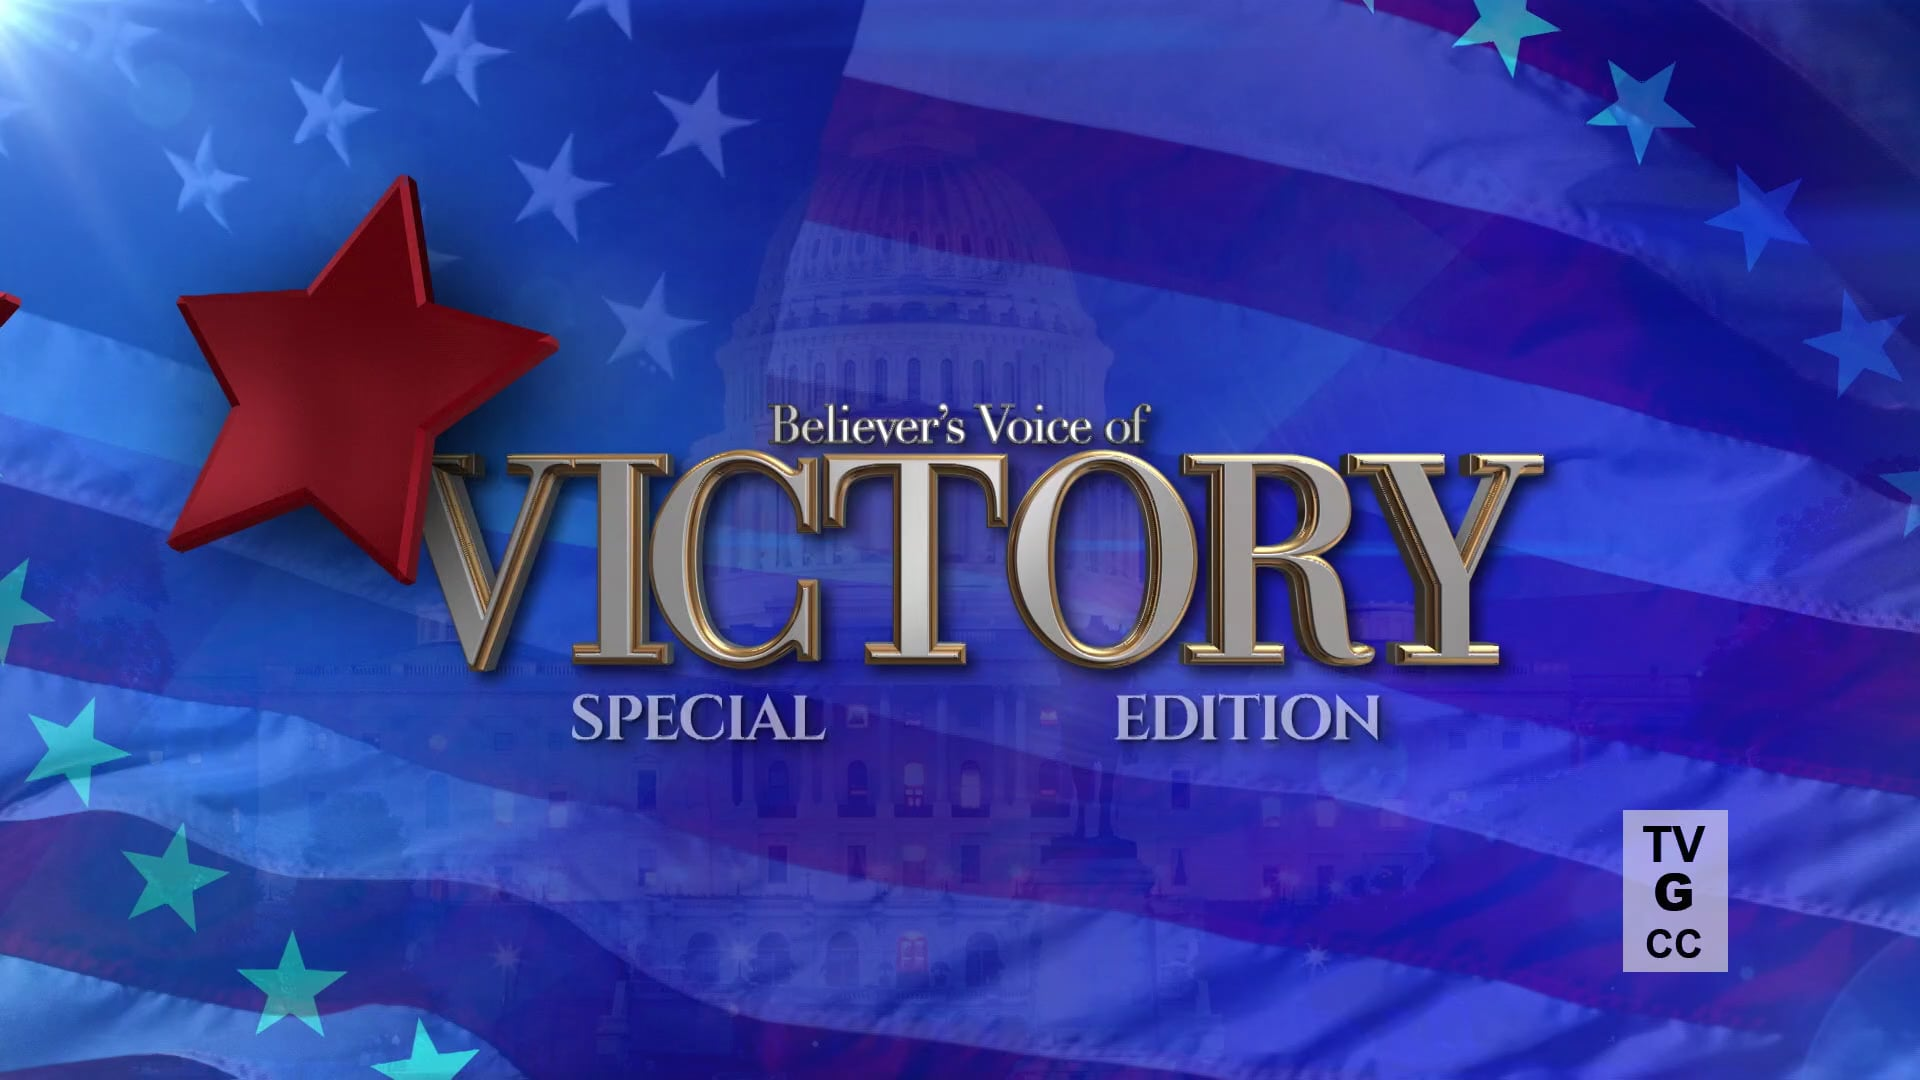 Catch a vision for the 2020 election and beyond! Watch Believer's Voice of Victory as Kenneth Copeland and Stephen Strang explain why Christians cannot stay home on Election Day. Learn the all-important reason you are here on earth now, and how there are enough Christians in this country who can make a significant change with their vote!